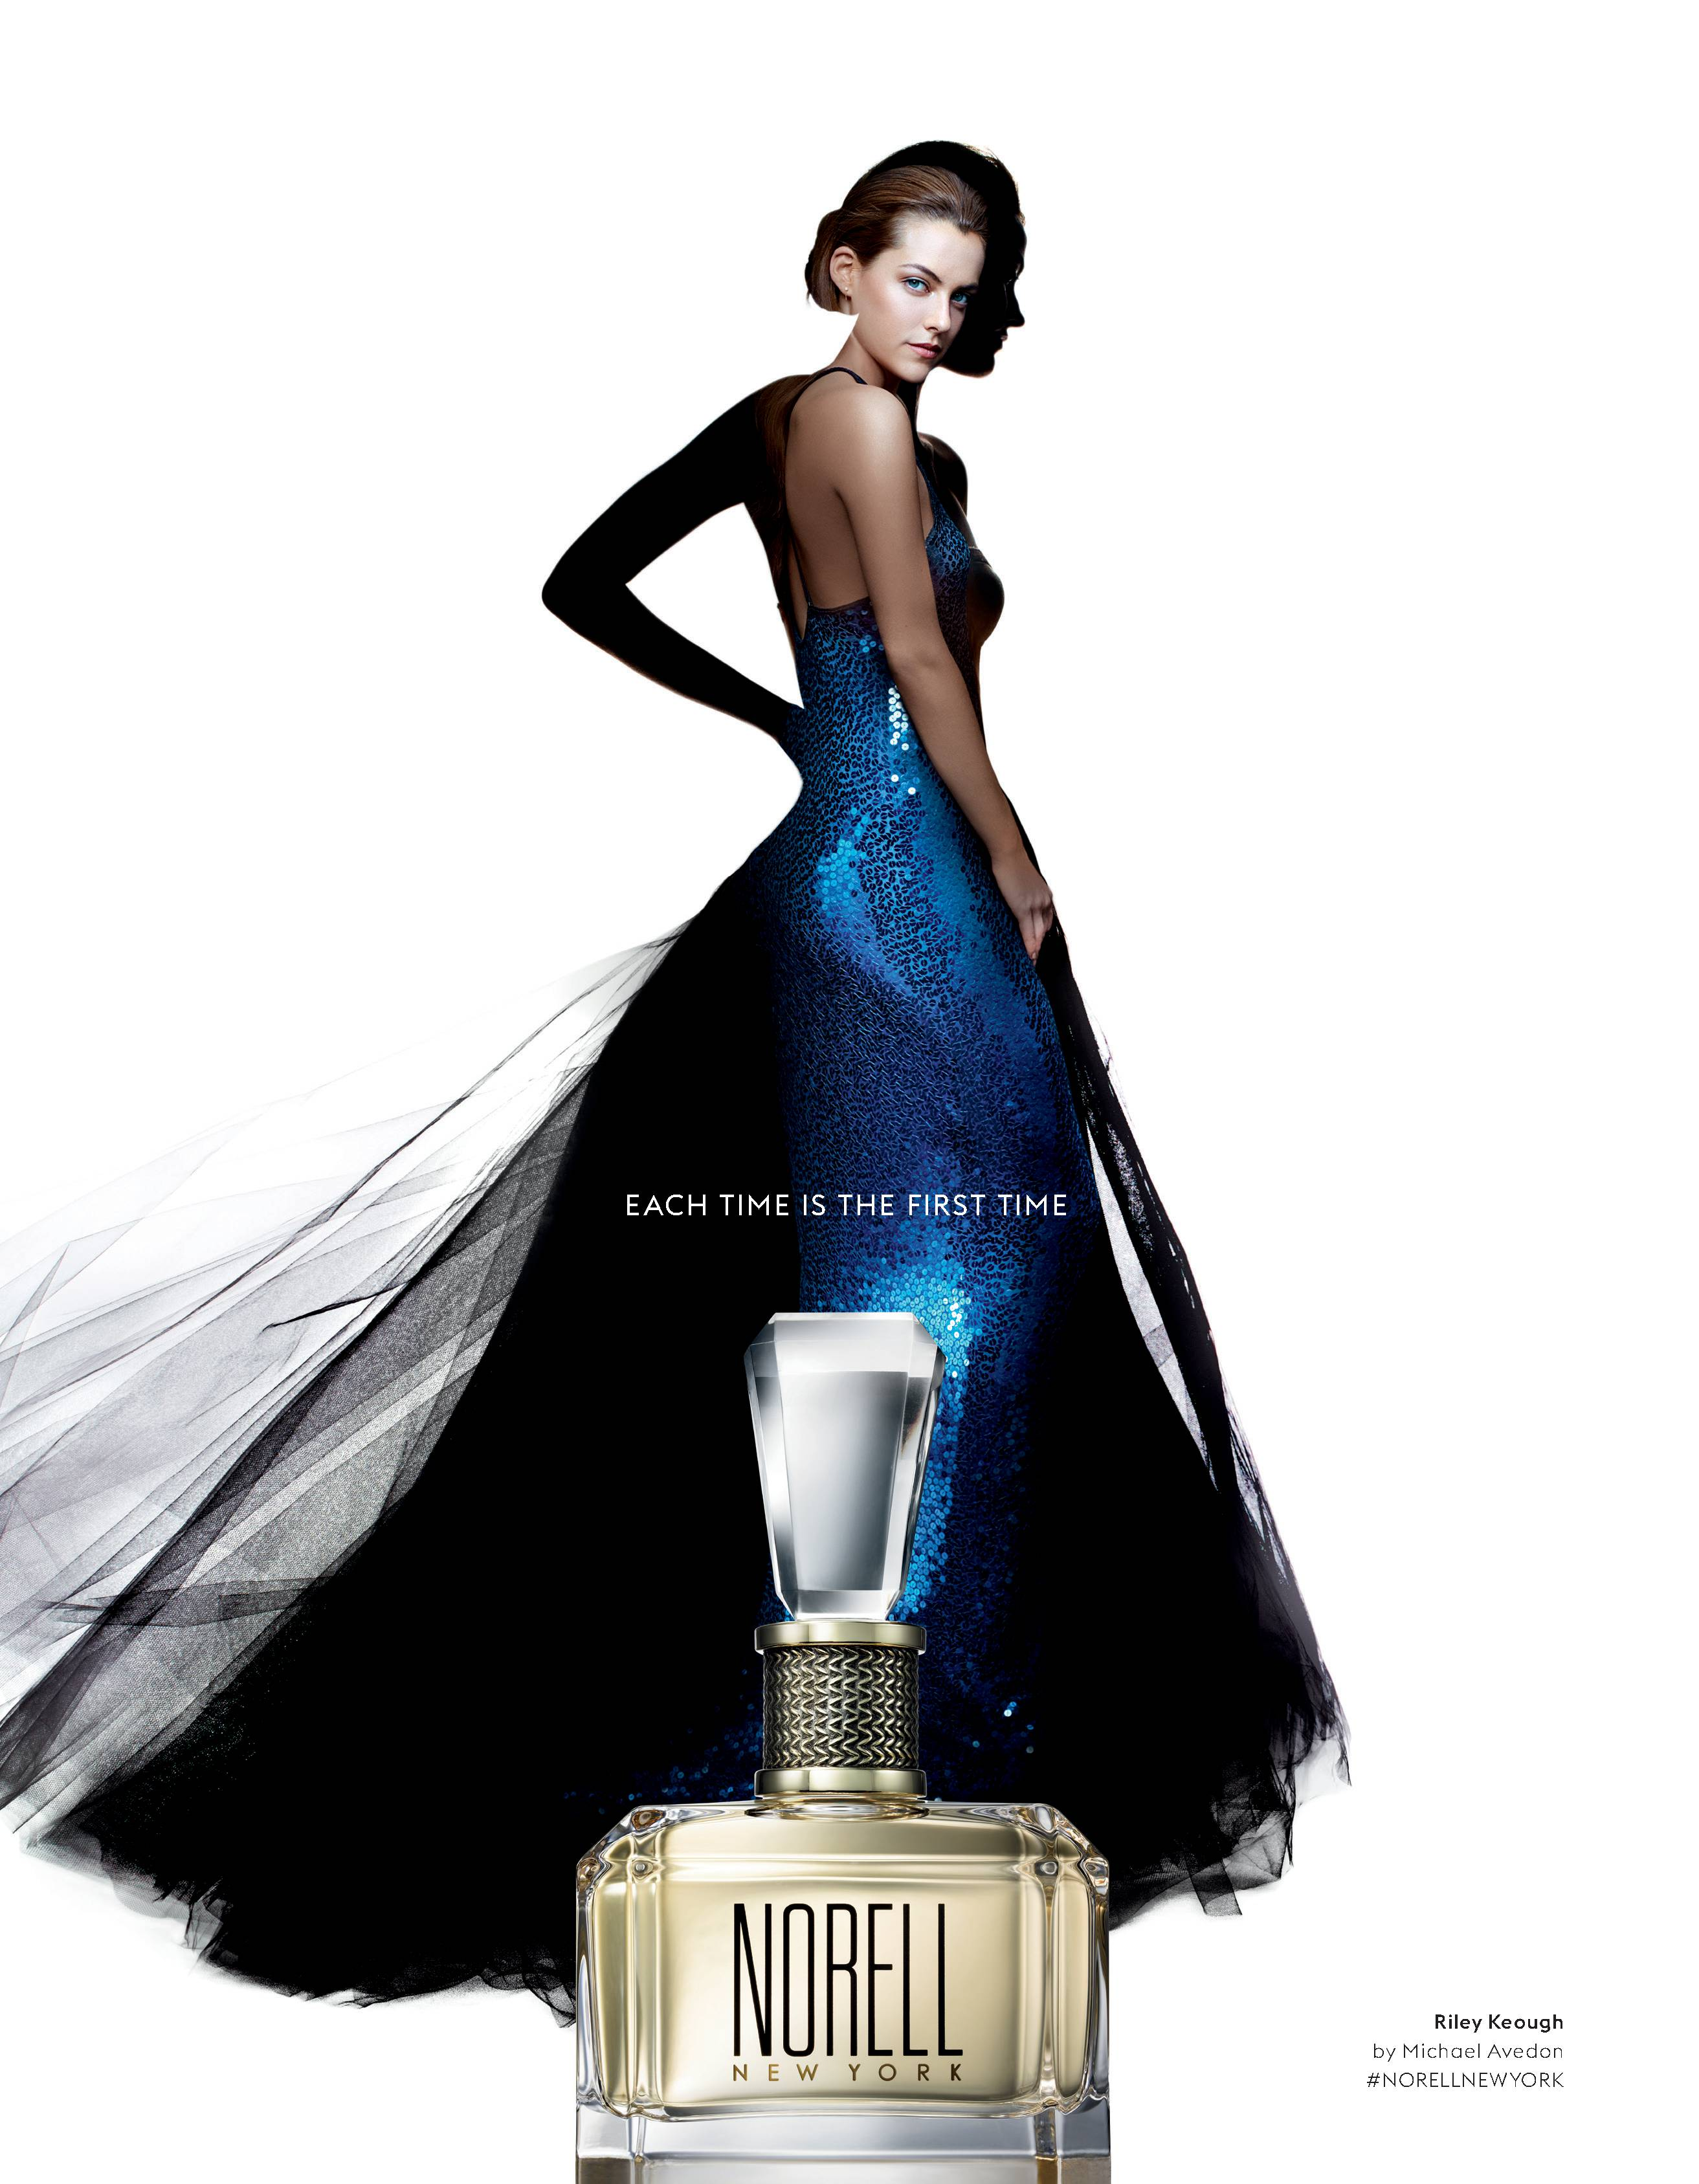 Norell New York perfume